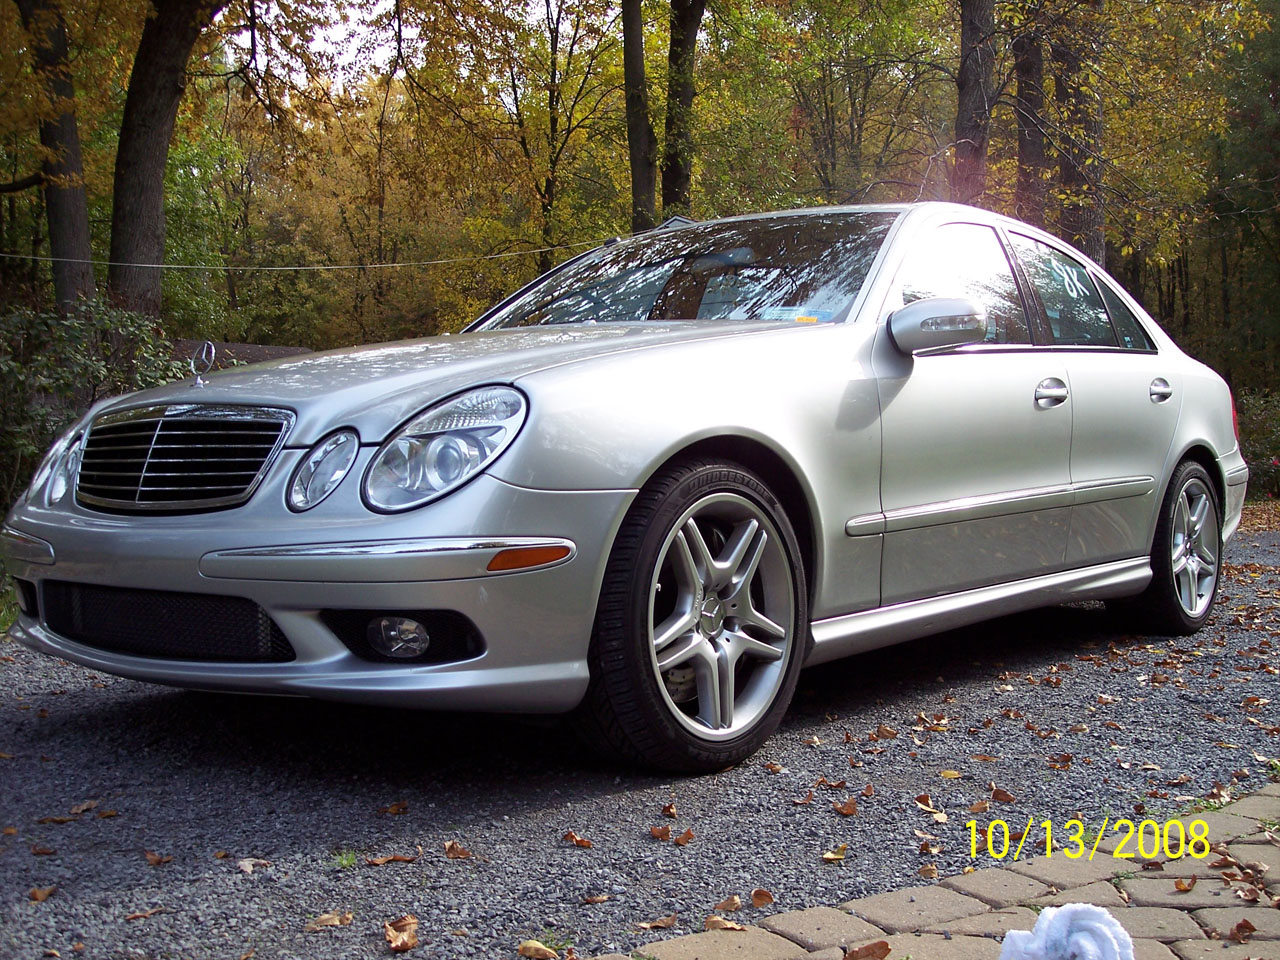 2003 Mercedes-Benz E55 AMG LET Stage 1